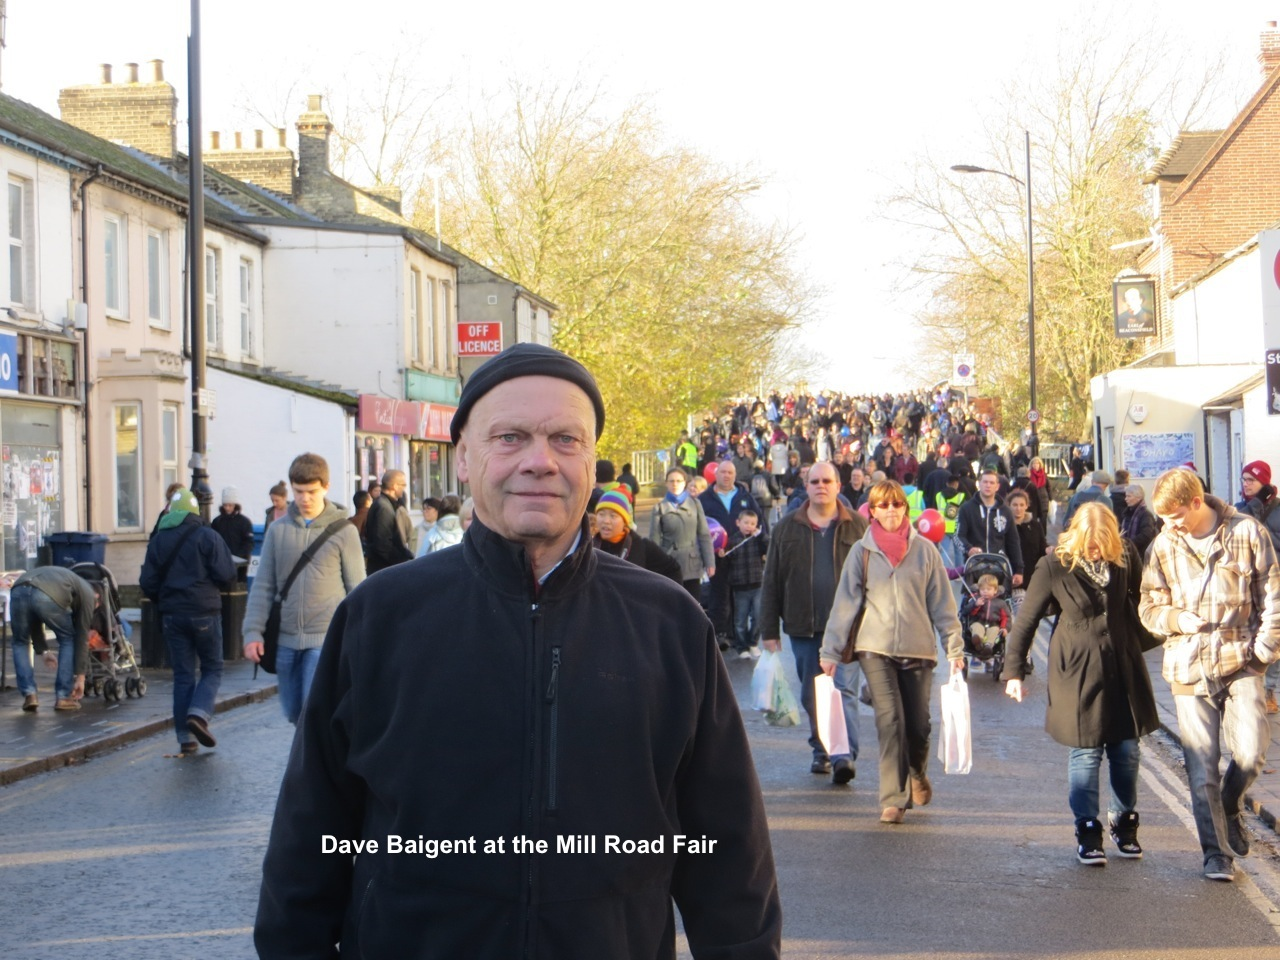 dave_at_mill_road_fair.jpg